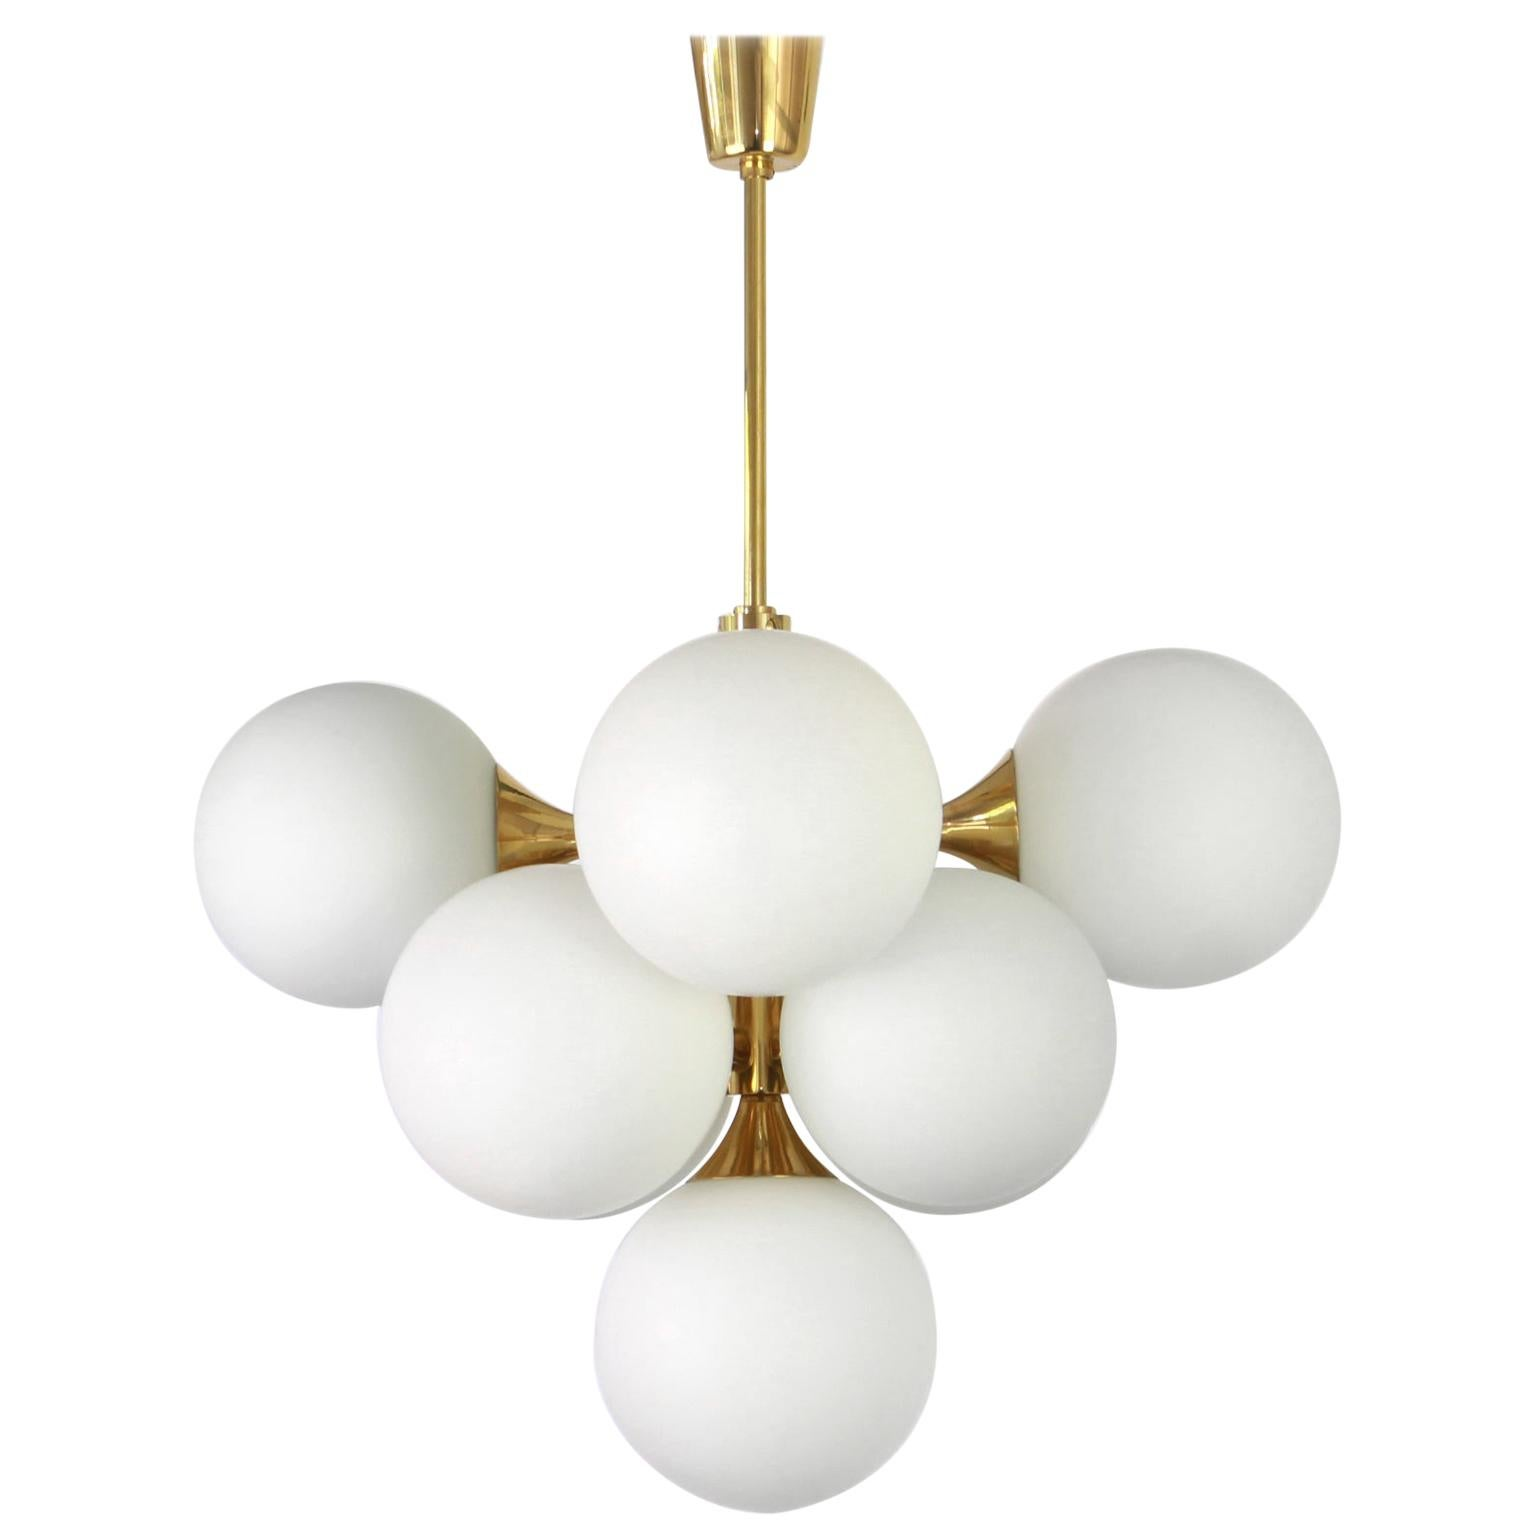 Atomic Brass Chandelier by Kaiser, Germany, 1960s